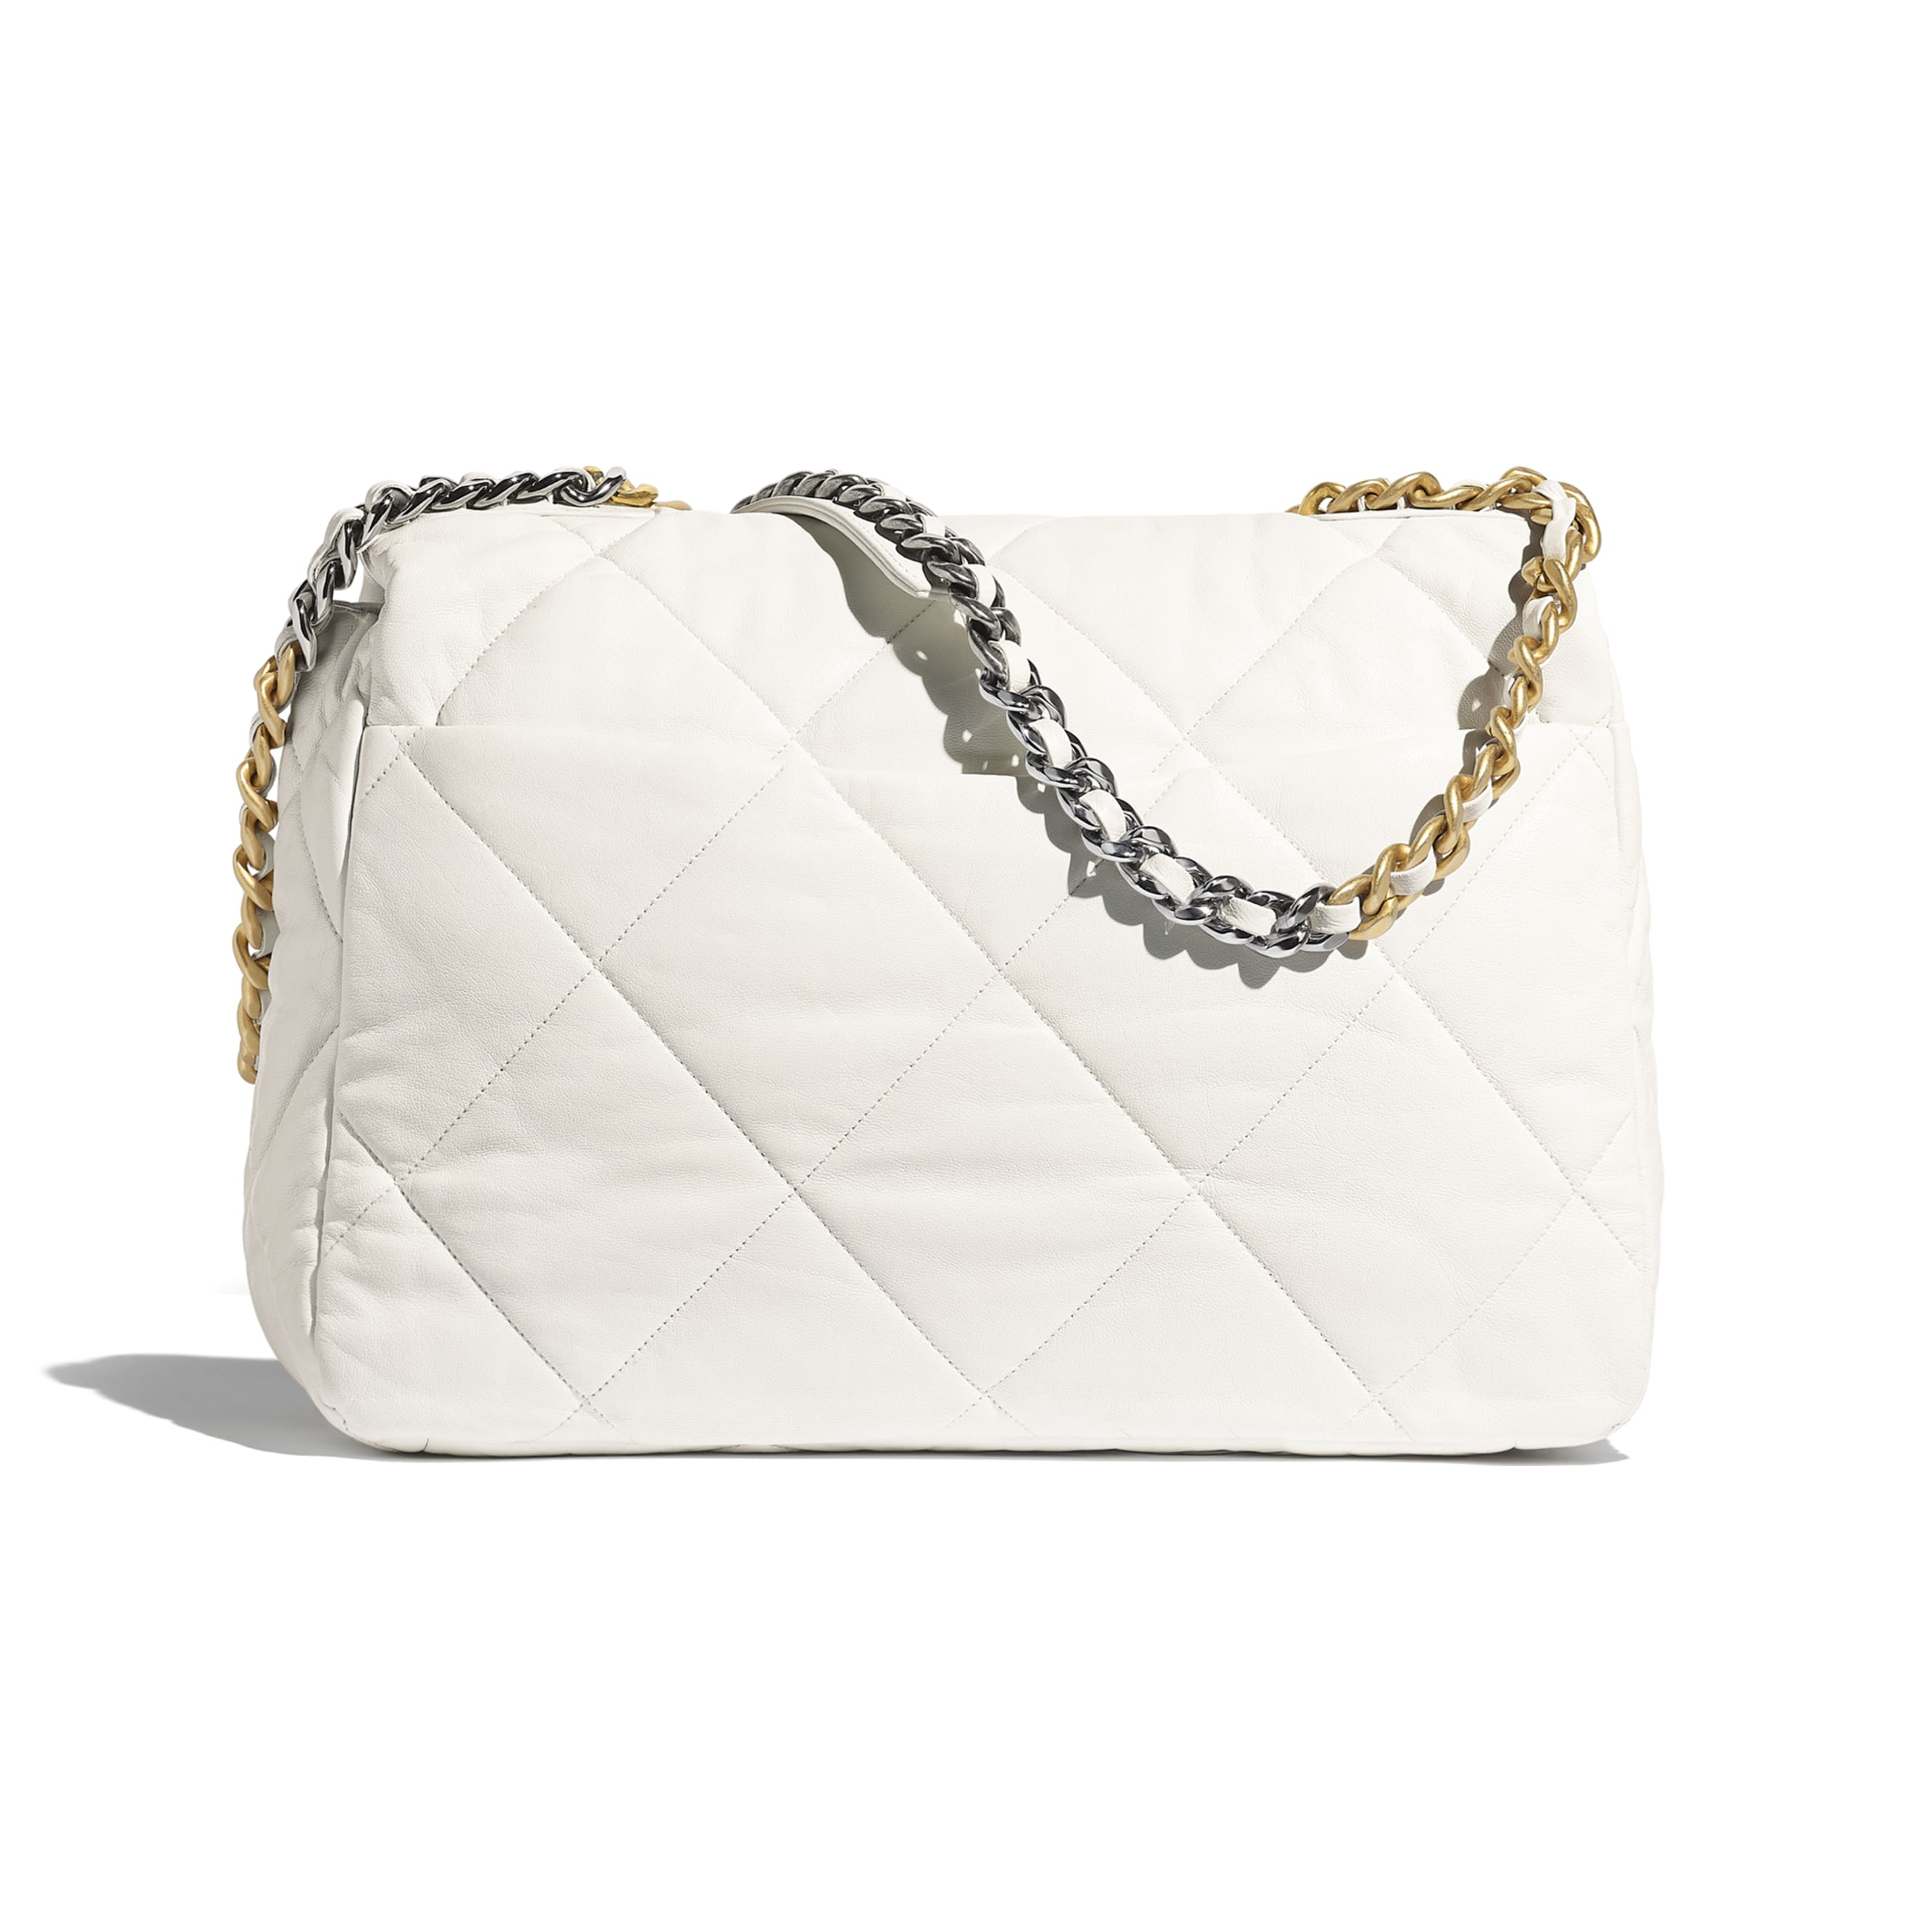 CHANEL 19 Maxi Flap Bag - White - Goatskin, Gold-Tone, Silver-Tone & Ruthenium-Finish Metal - Alternative view - see standard sized version